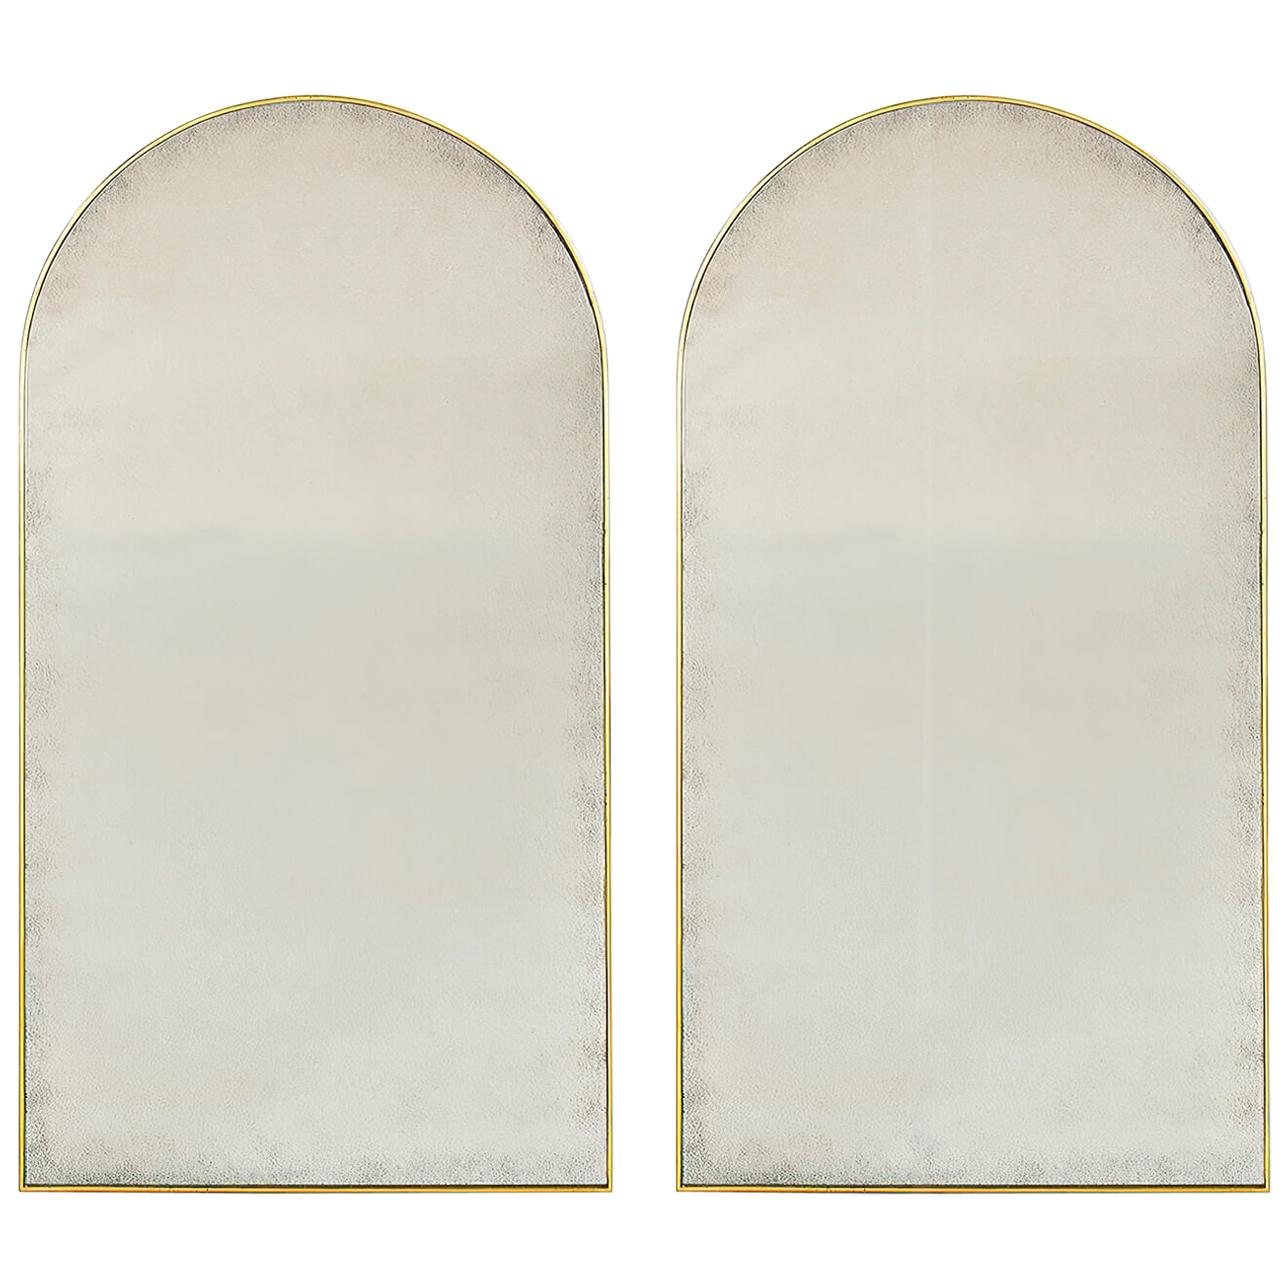 Pair of Arch Top Gilt Mirrors